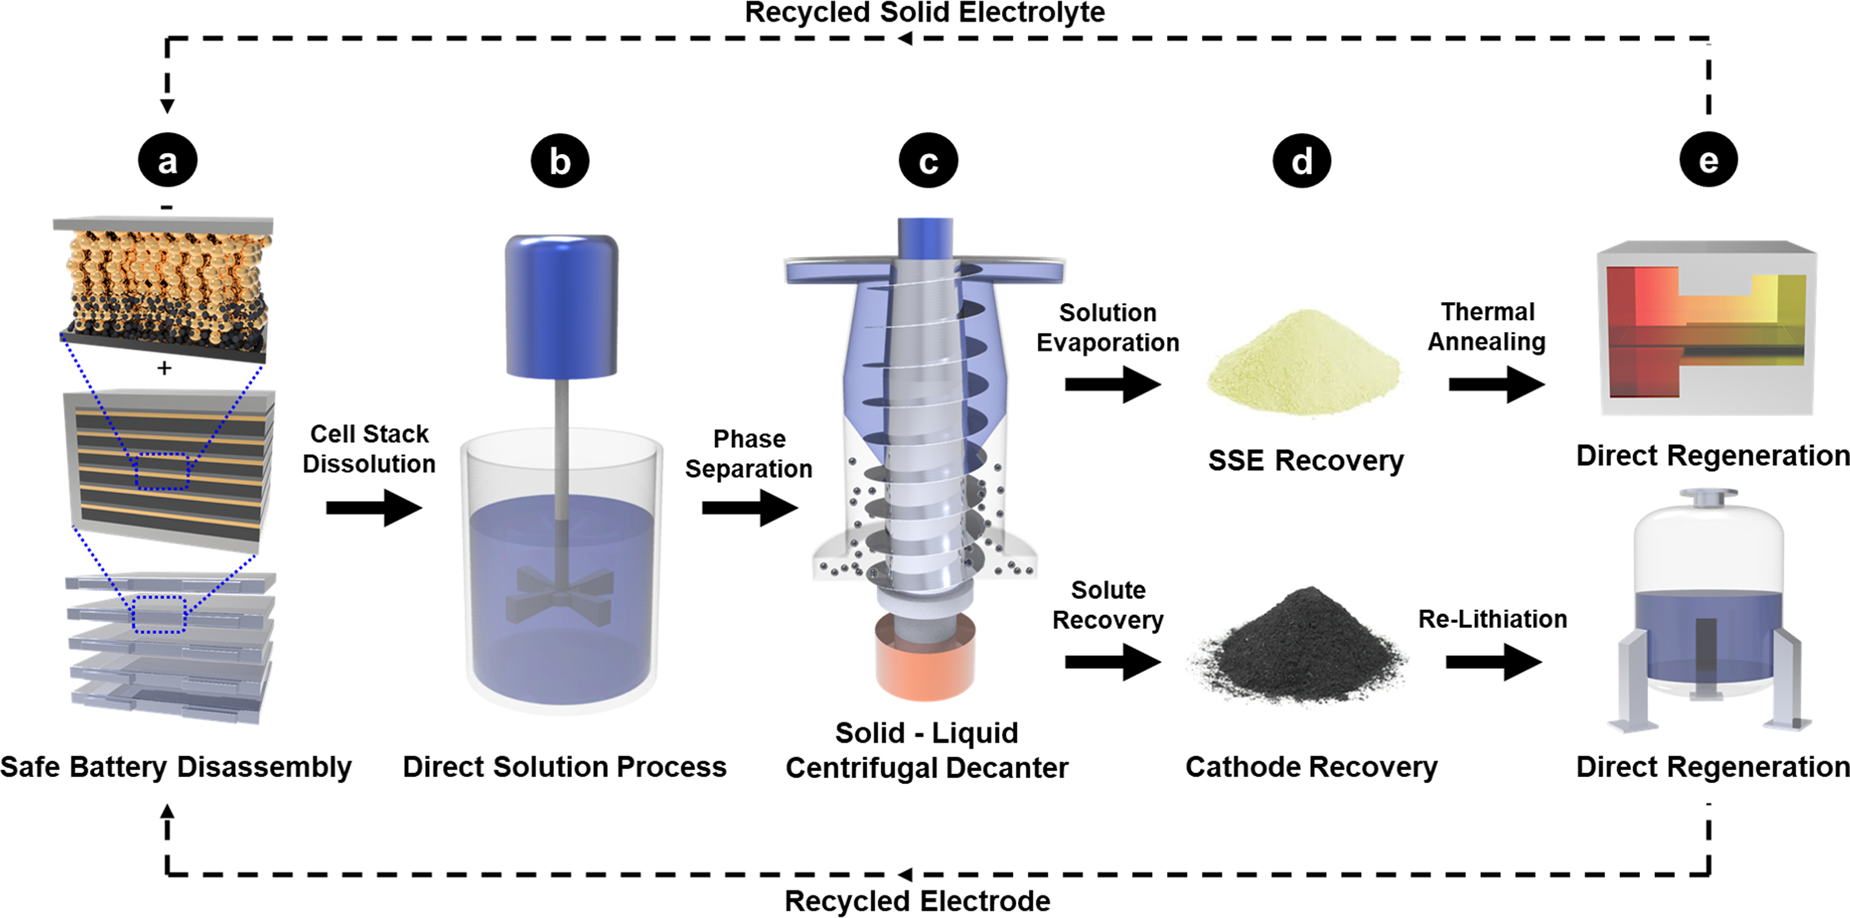 Designing Batteries for Easier Recycling